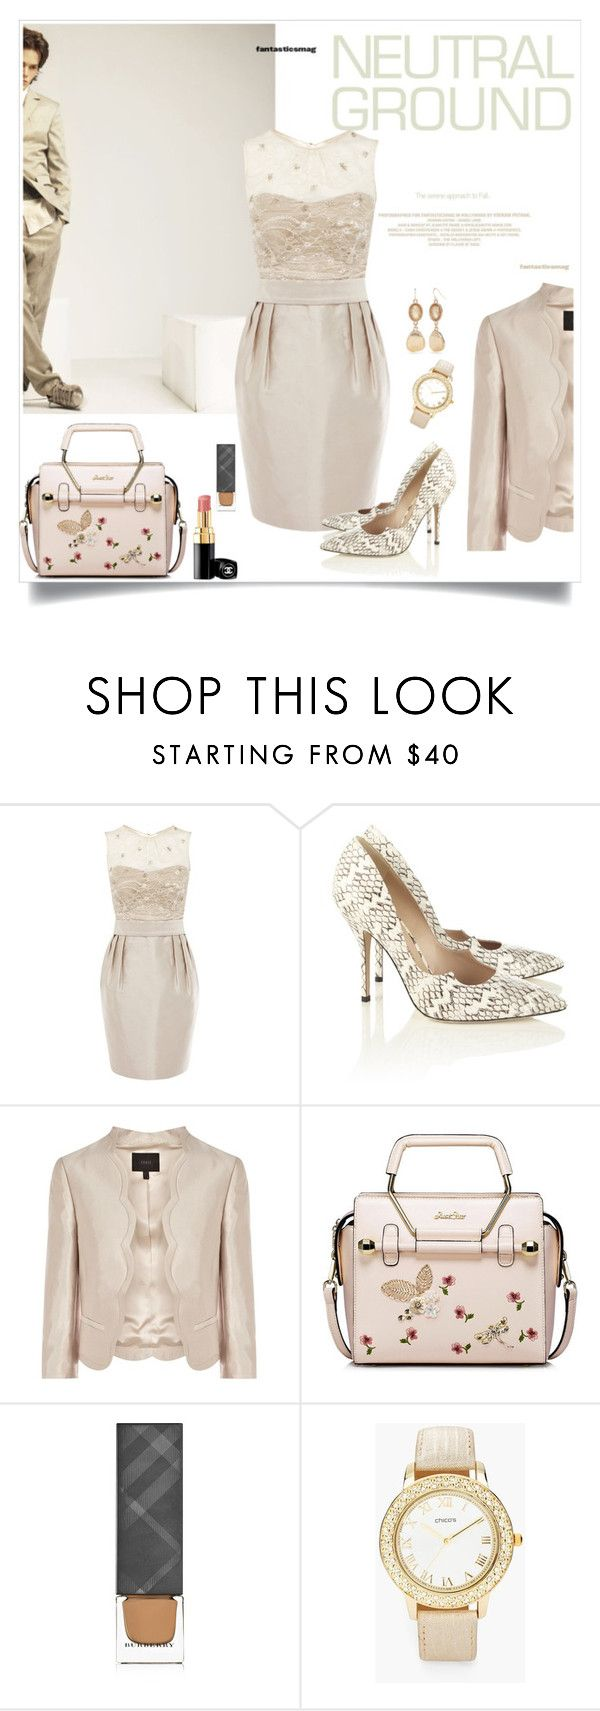 """Lady"" by hani-bgd ❤ liked on Polyvore featuring Coast, Paul Andrew, Burberry, Chico's, Ruby Rd. and neutrals"